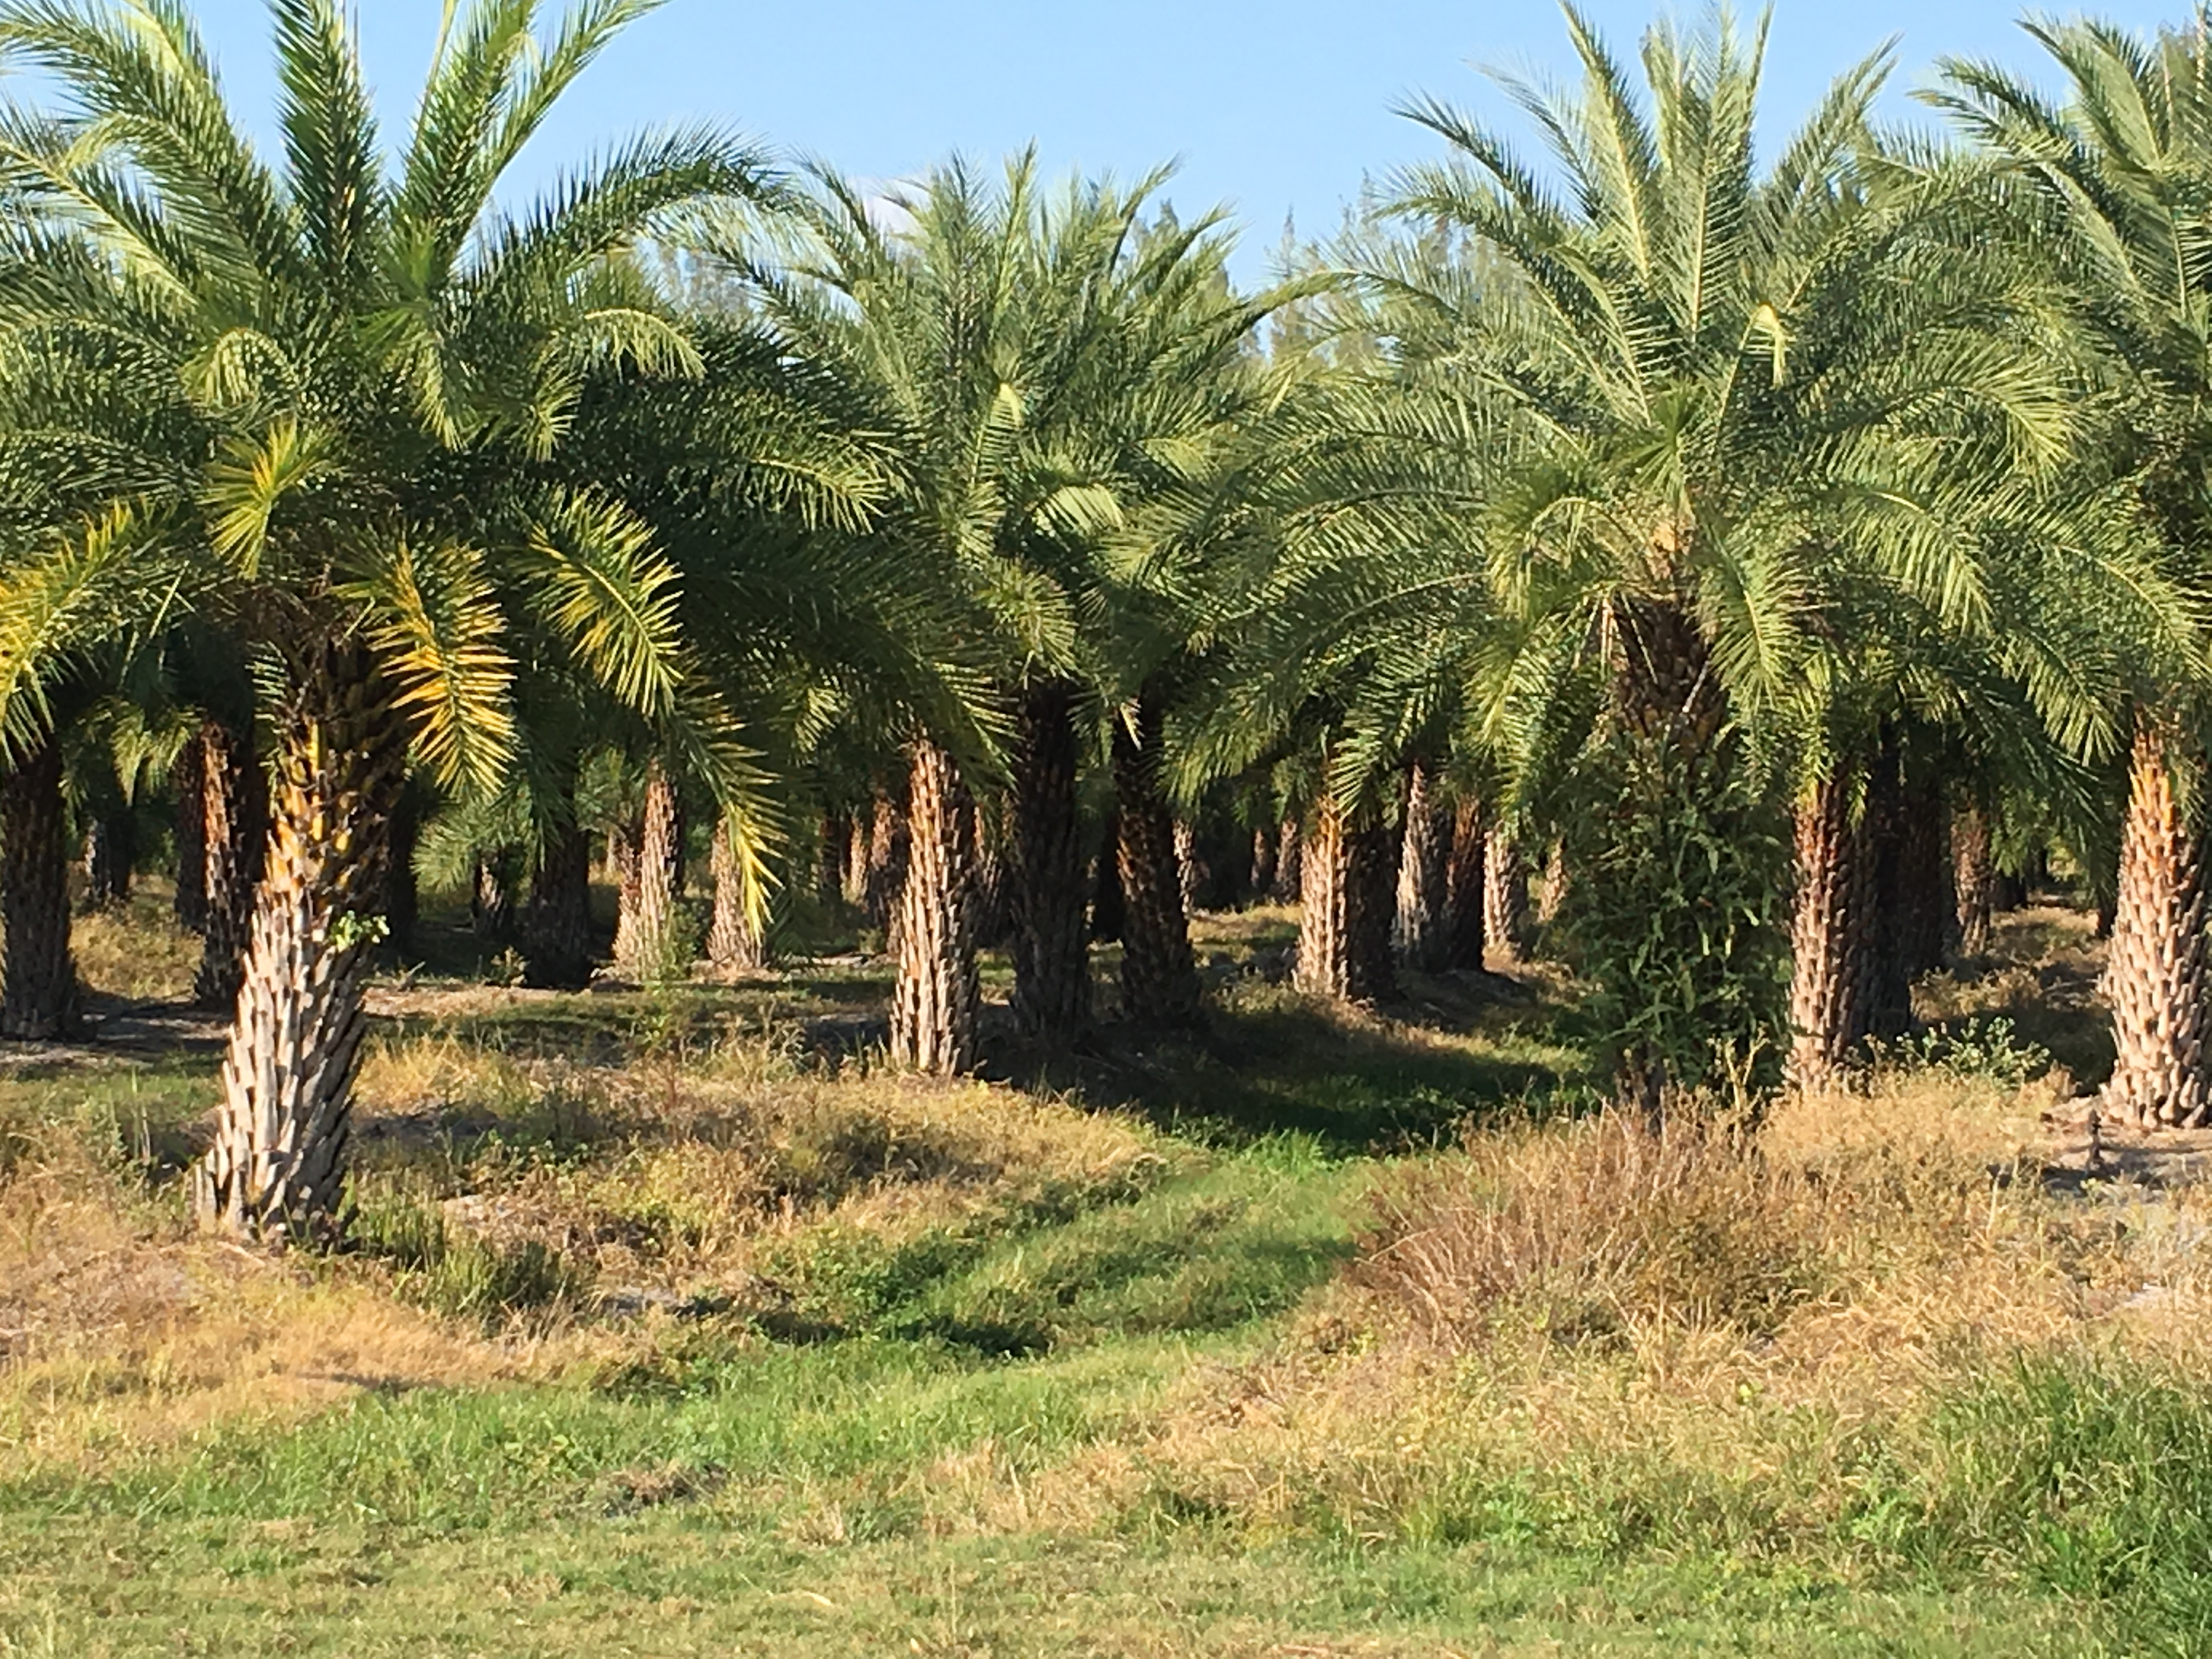 Photo of Palm Plantation by Phil Bourke